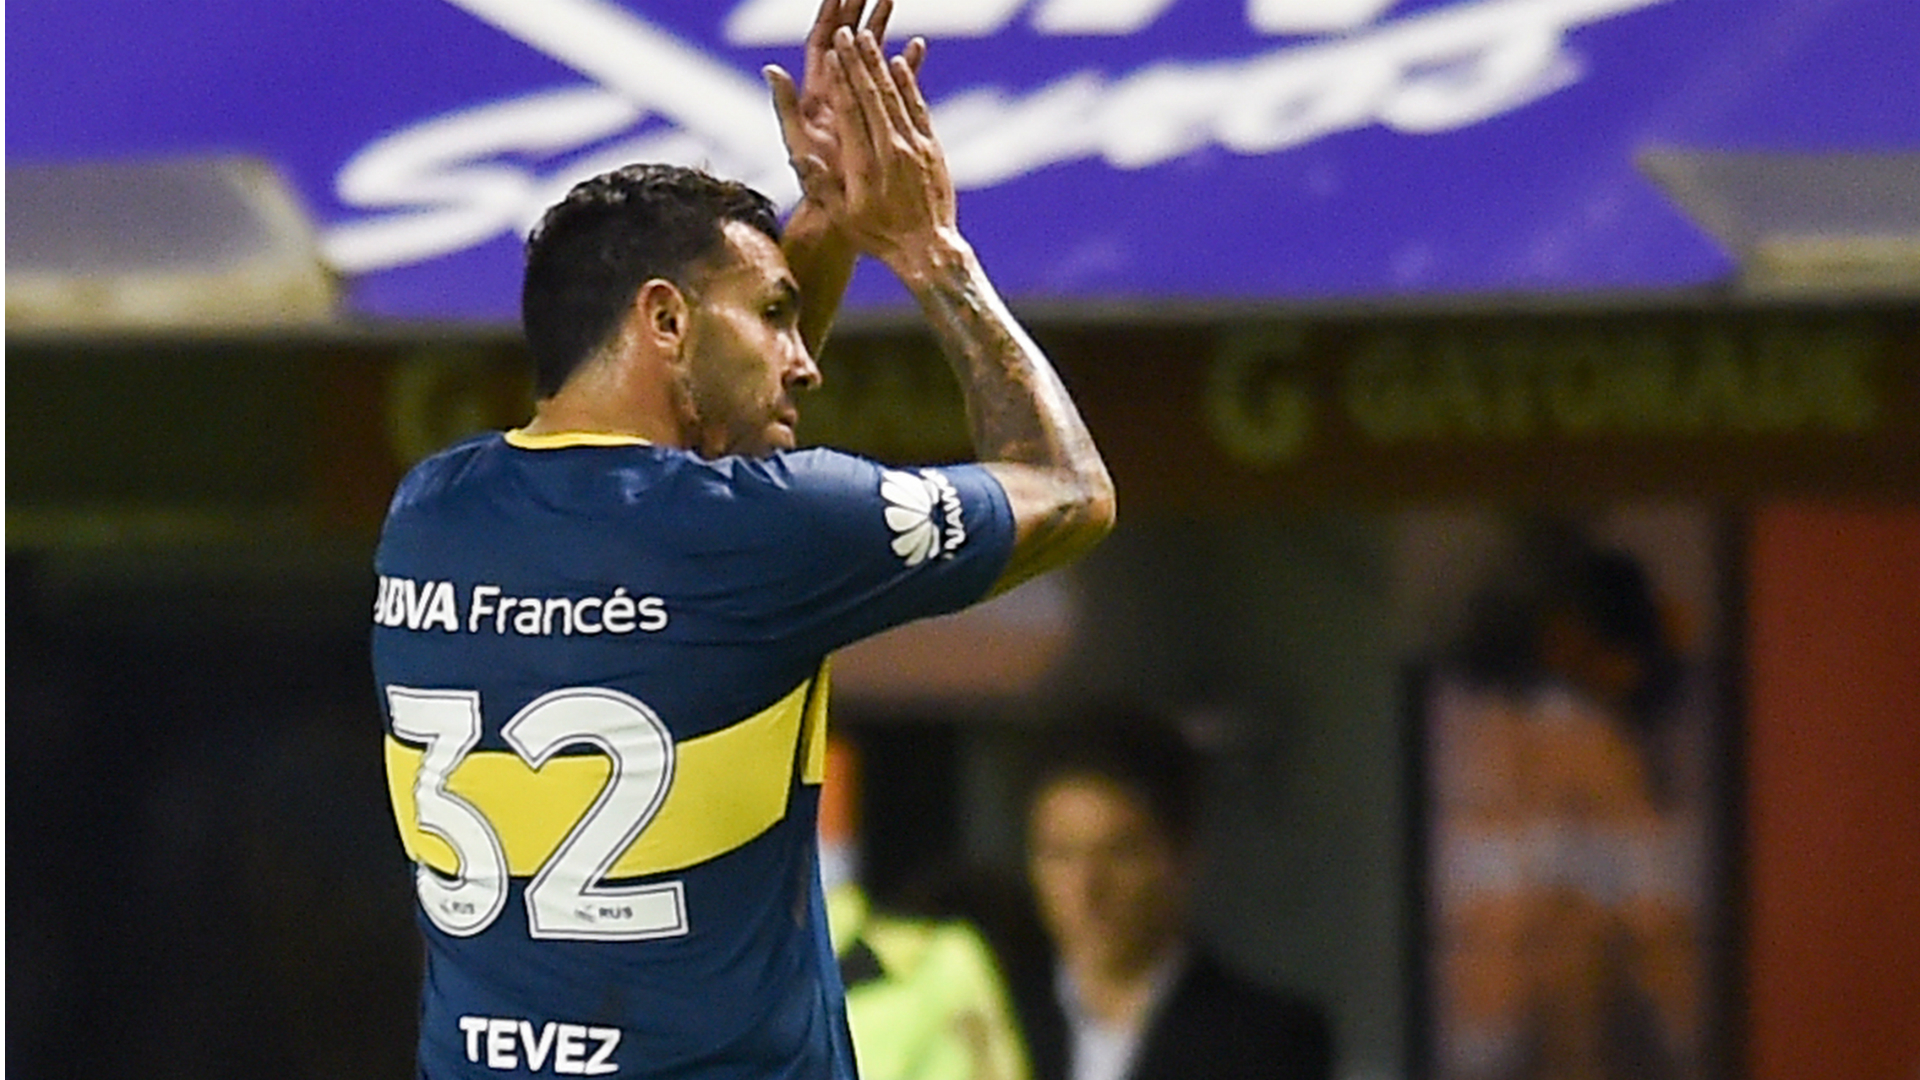 Out of touch and over the hill - how Boca's prodigal son Tevez has failed to impress on his return